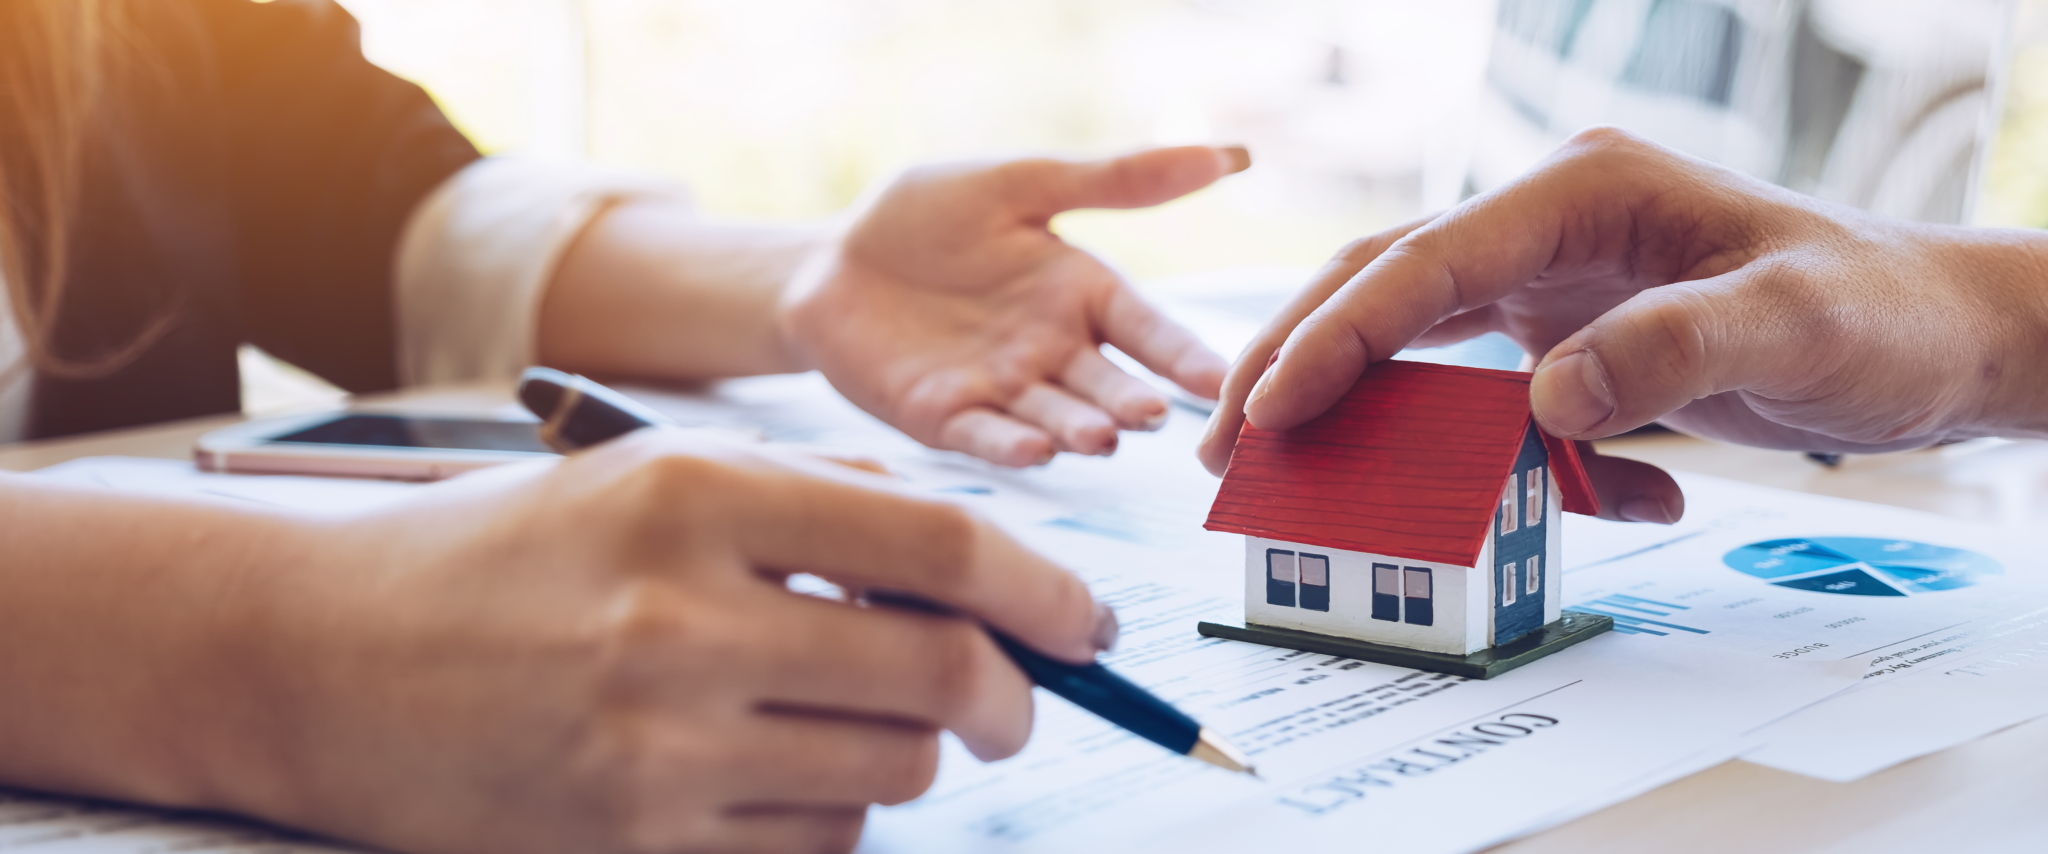 The Main Key to Understanding the Rise in Mortgage Rates